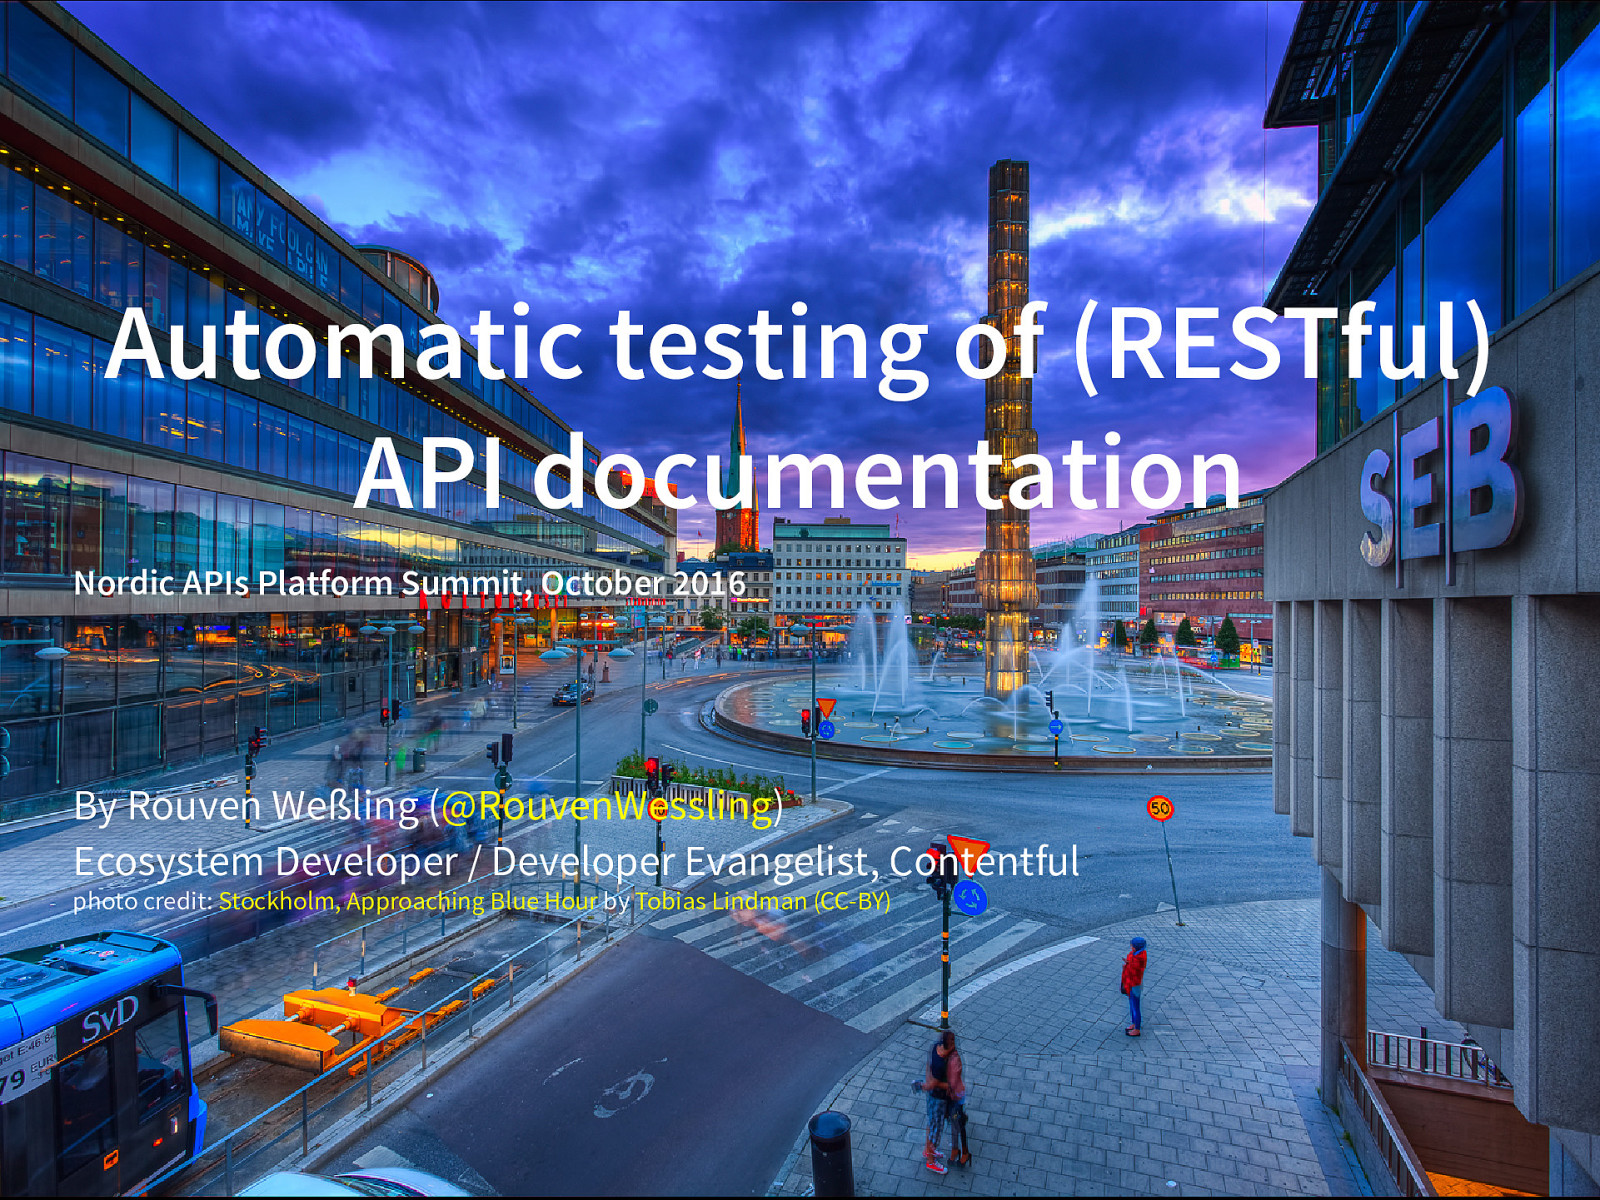 Automatic Testing of API Documentation